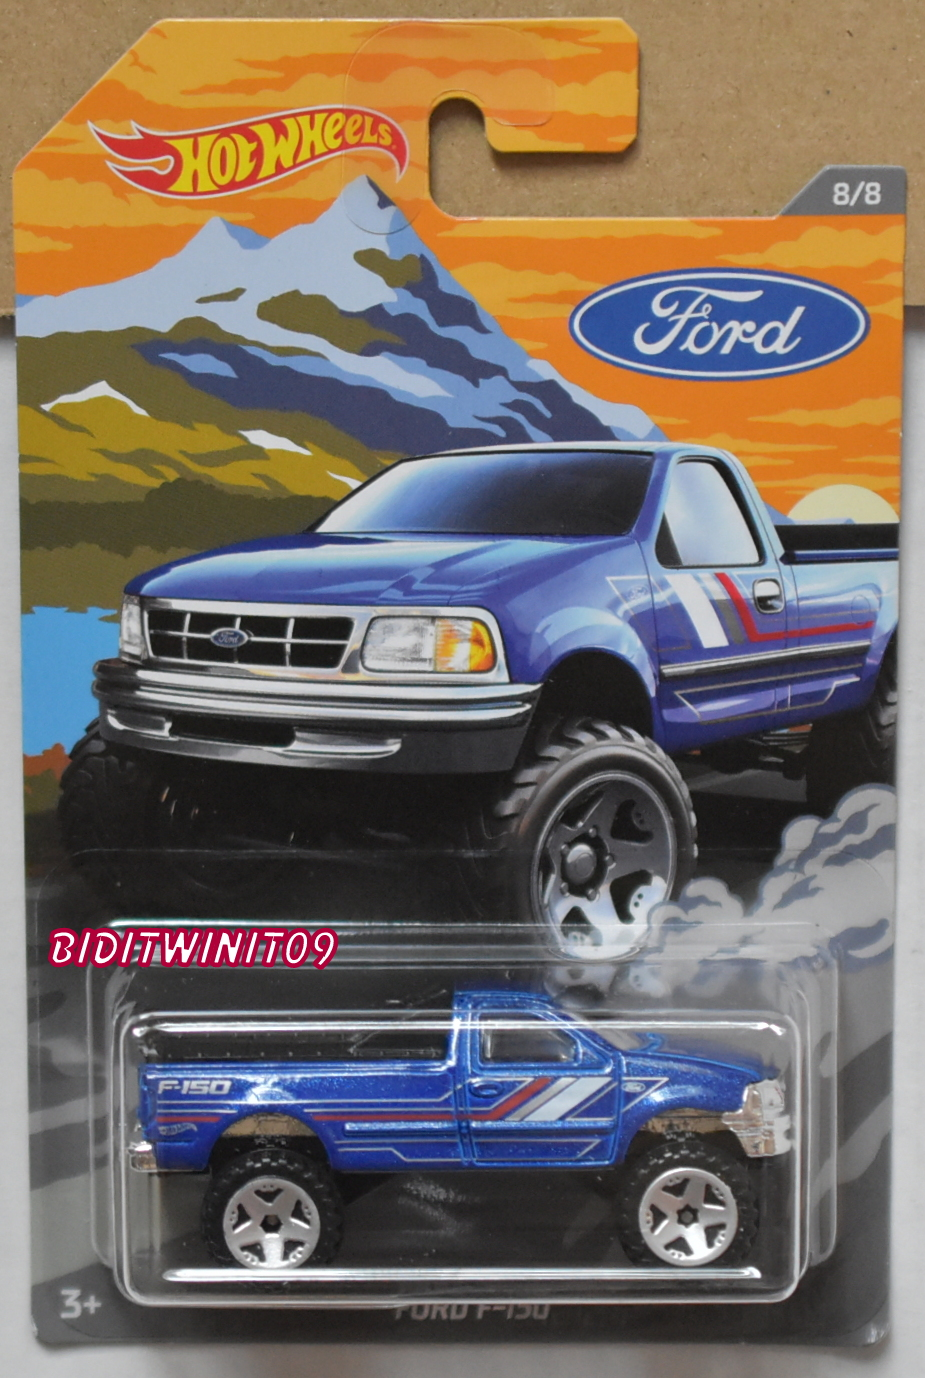 HOT WHEELS 2018 FORD TRUCK FORD F-150 #8/8